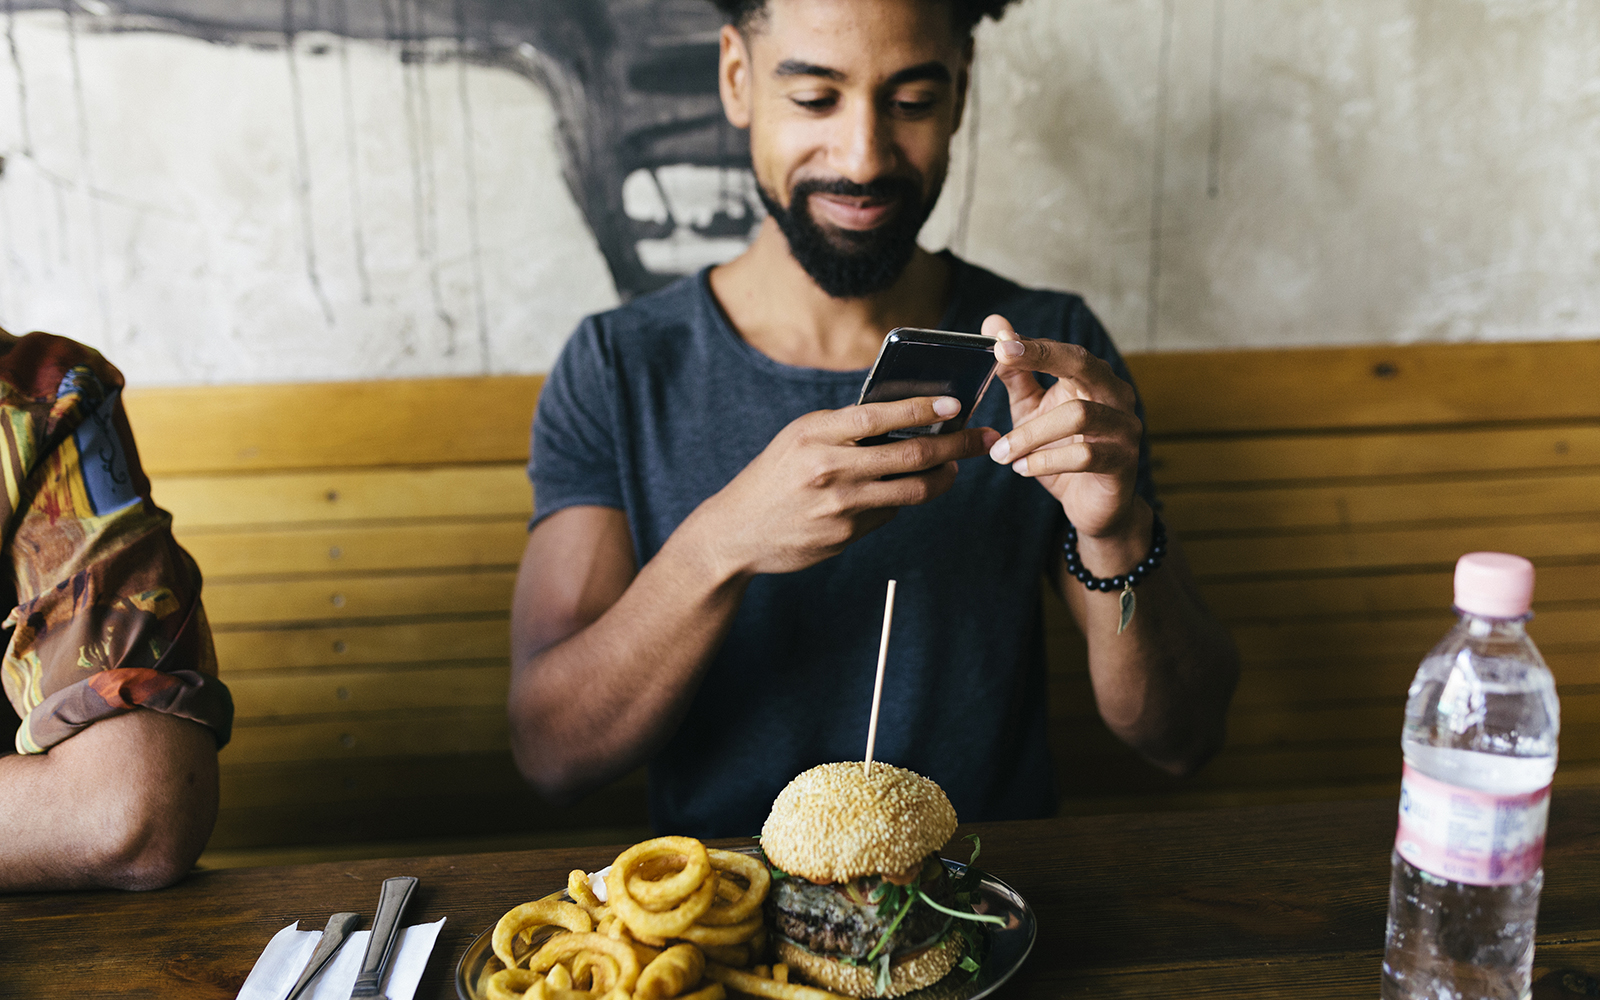 A man uses his smartphone to take photos of his burger at a restaurant. (Getty Images)